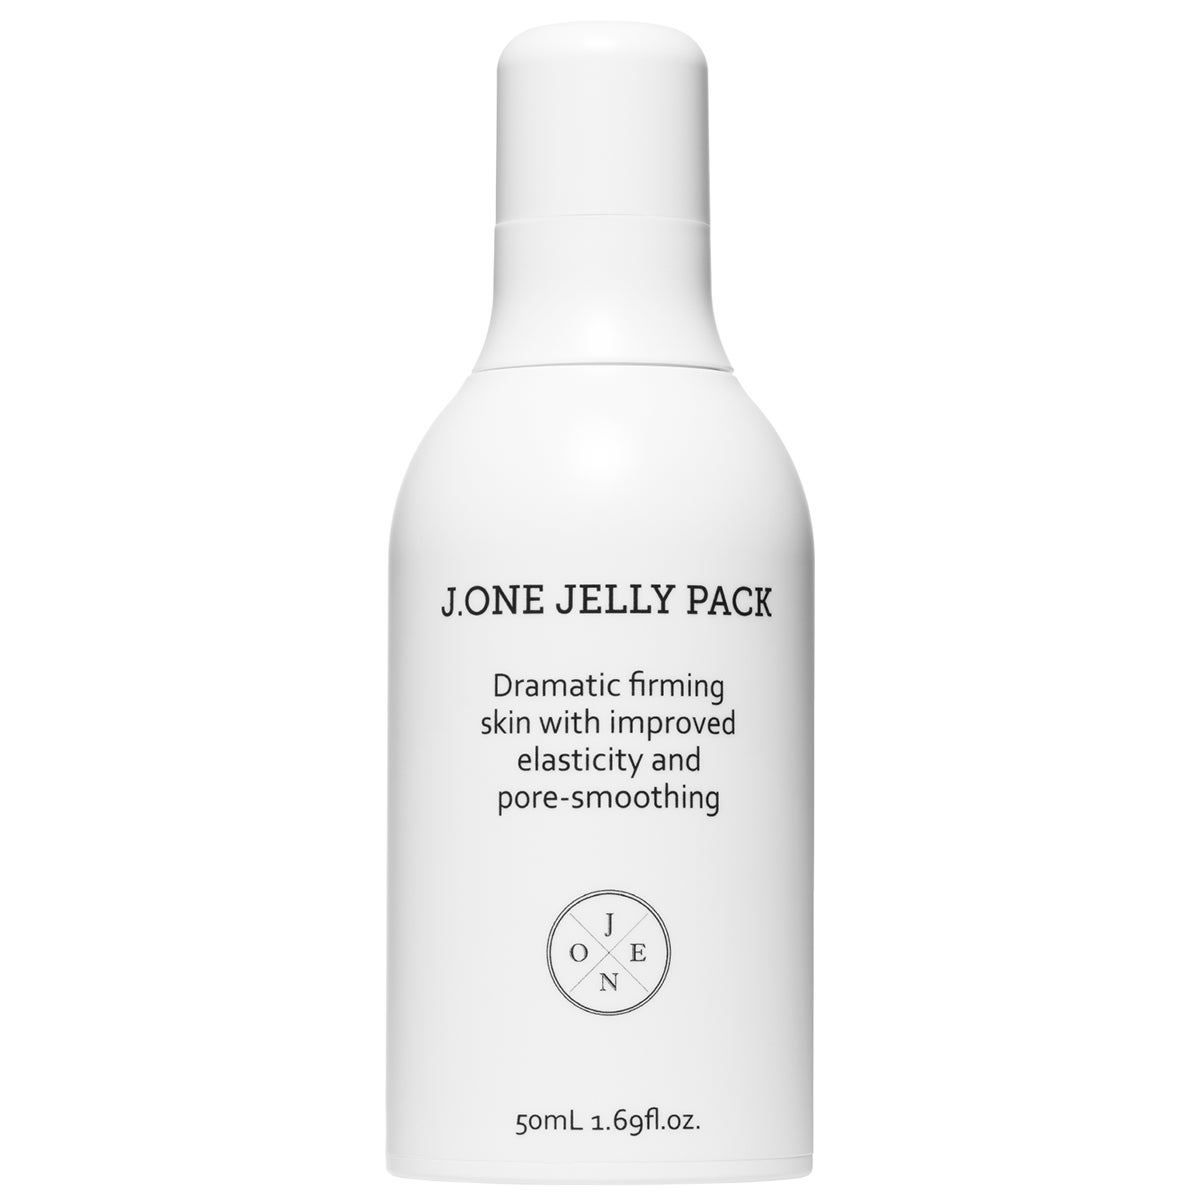 J.ONE White Jelly Pack